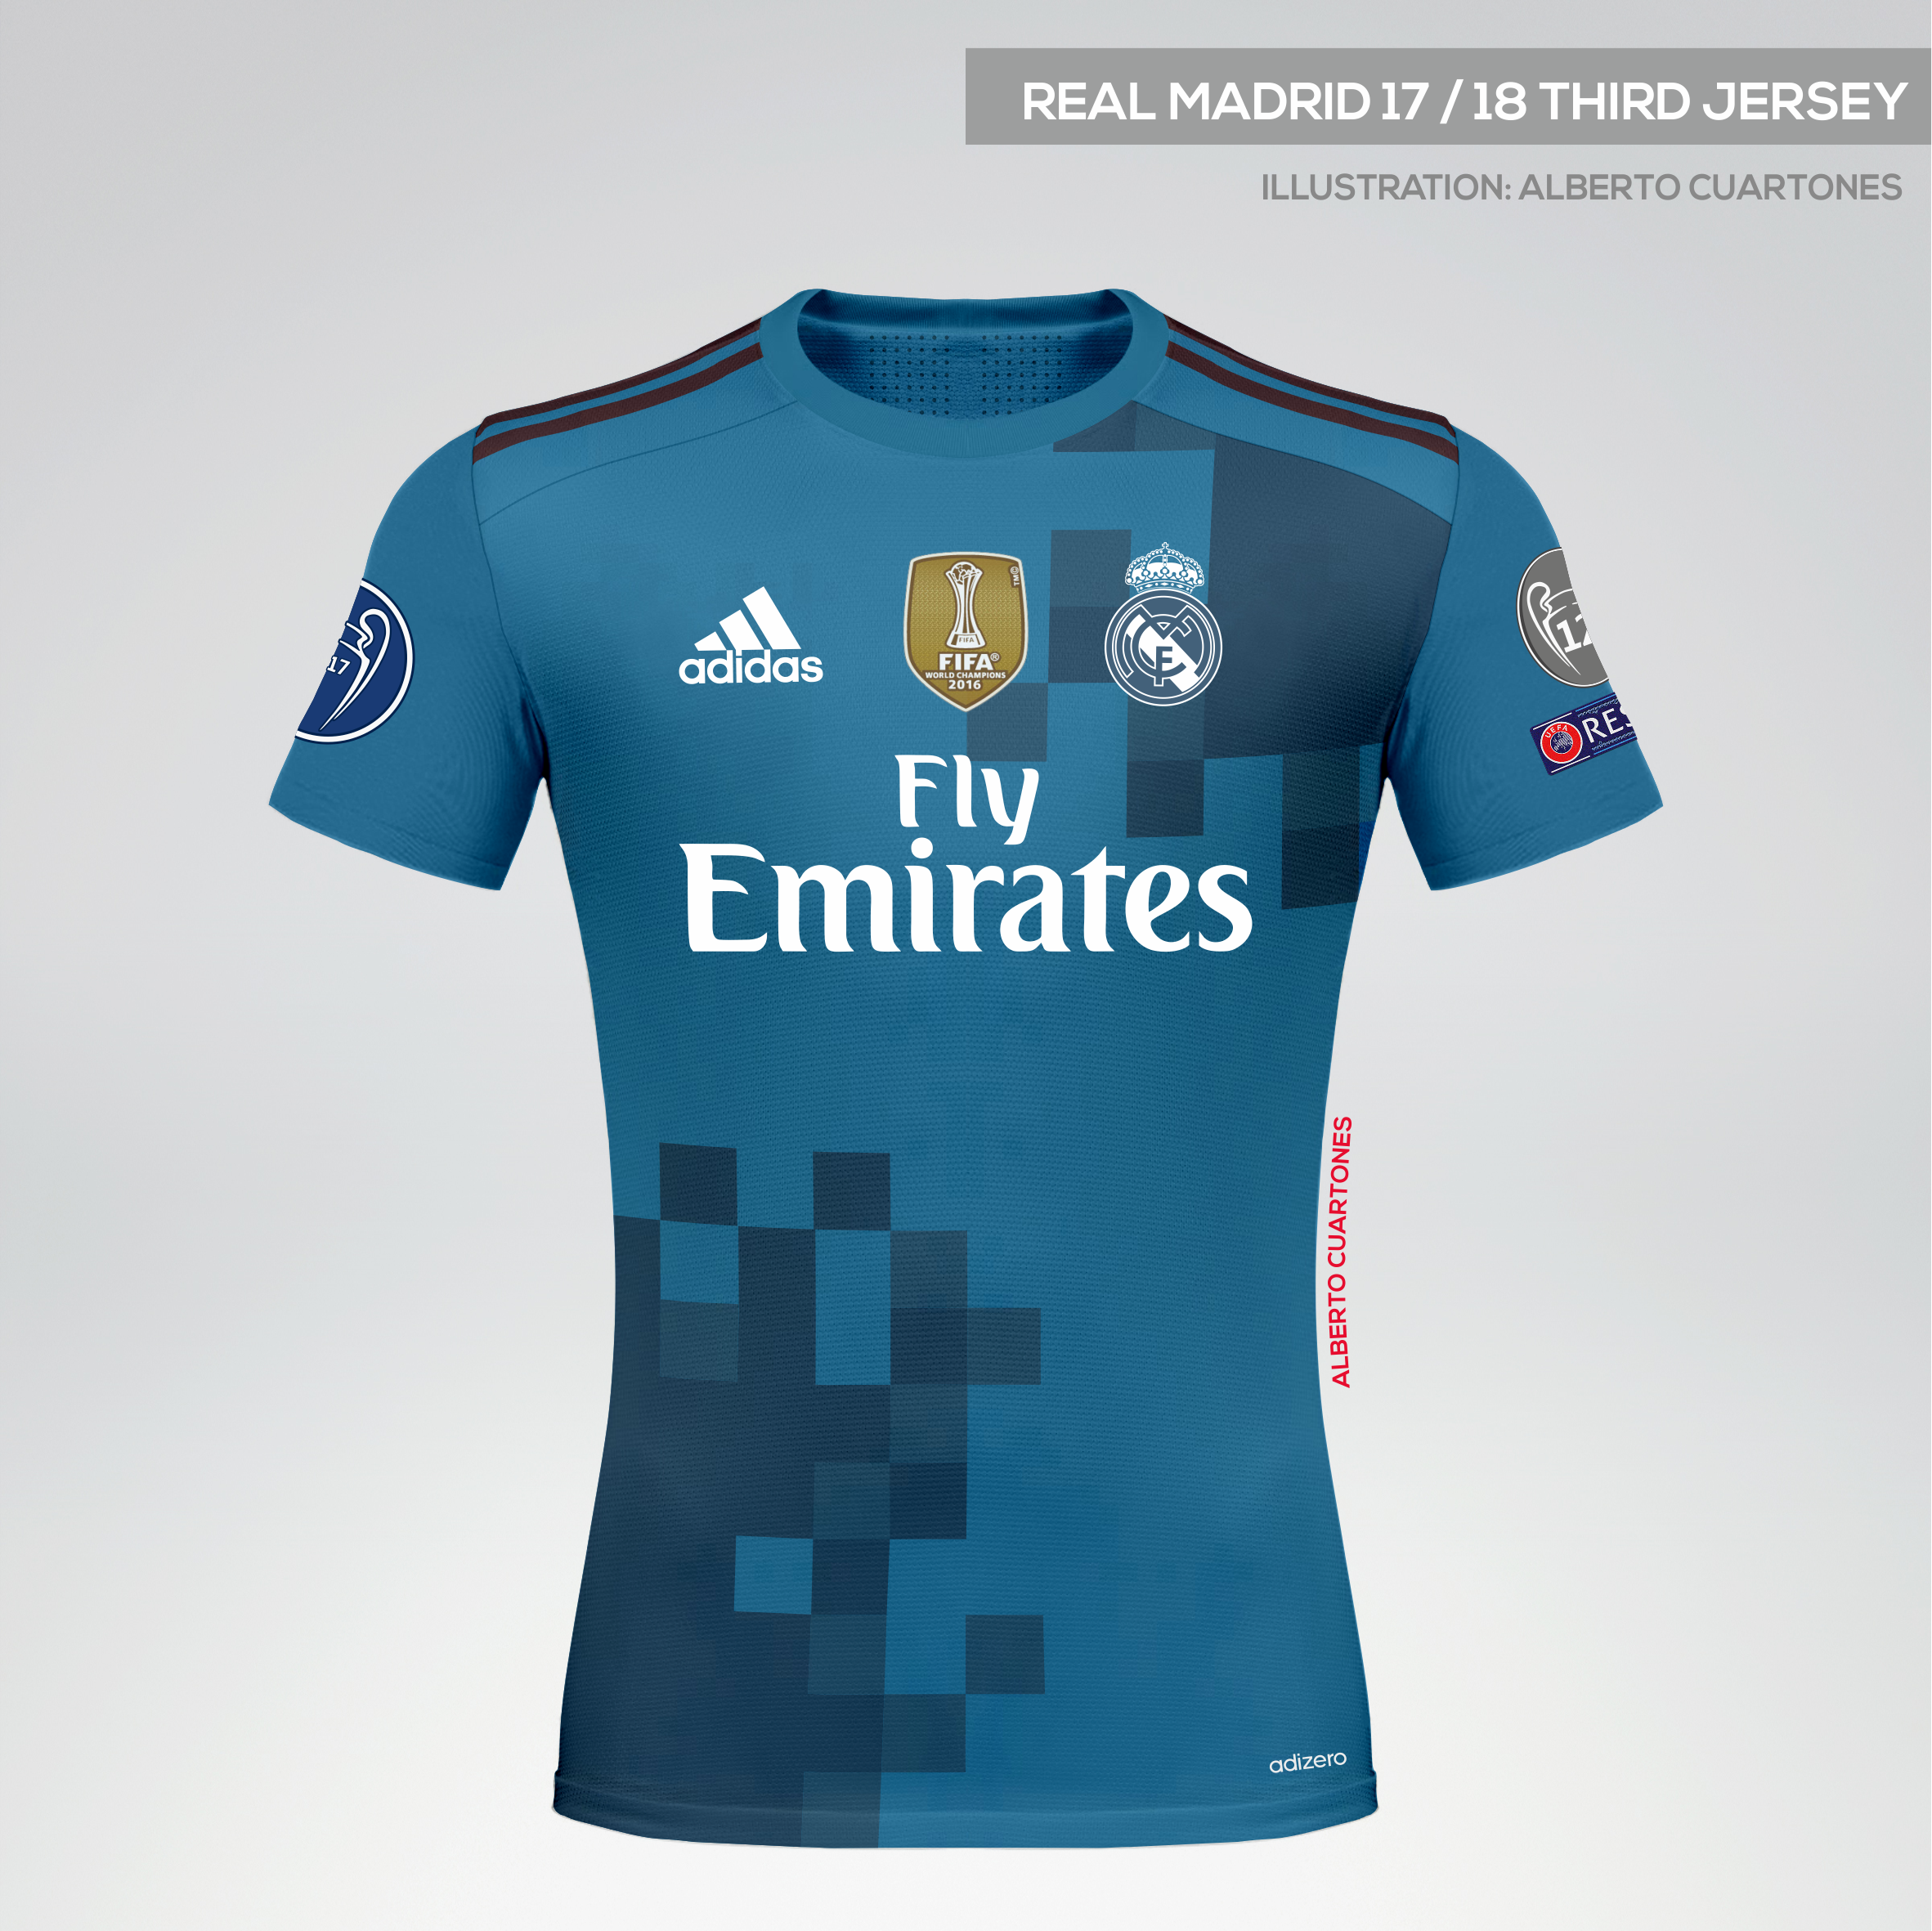 529880727 Pin by Javi on Proyectos que intentar | Real madrid, Madrid, Real ...